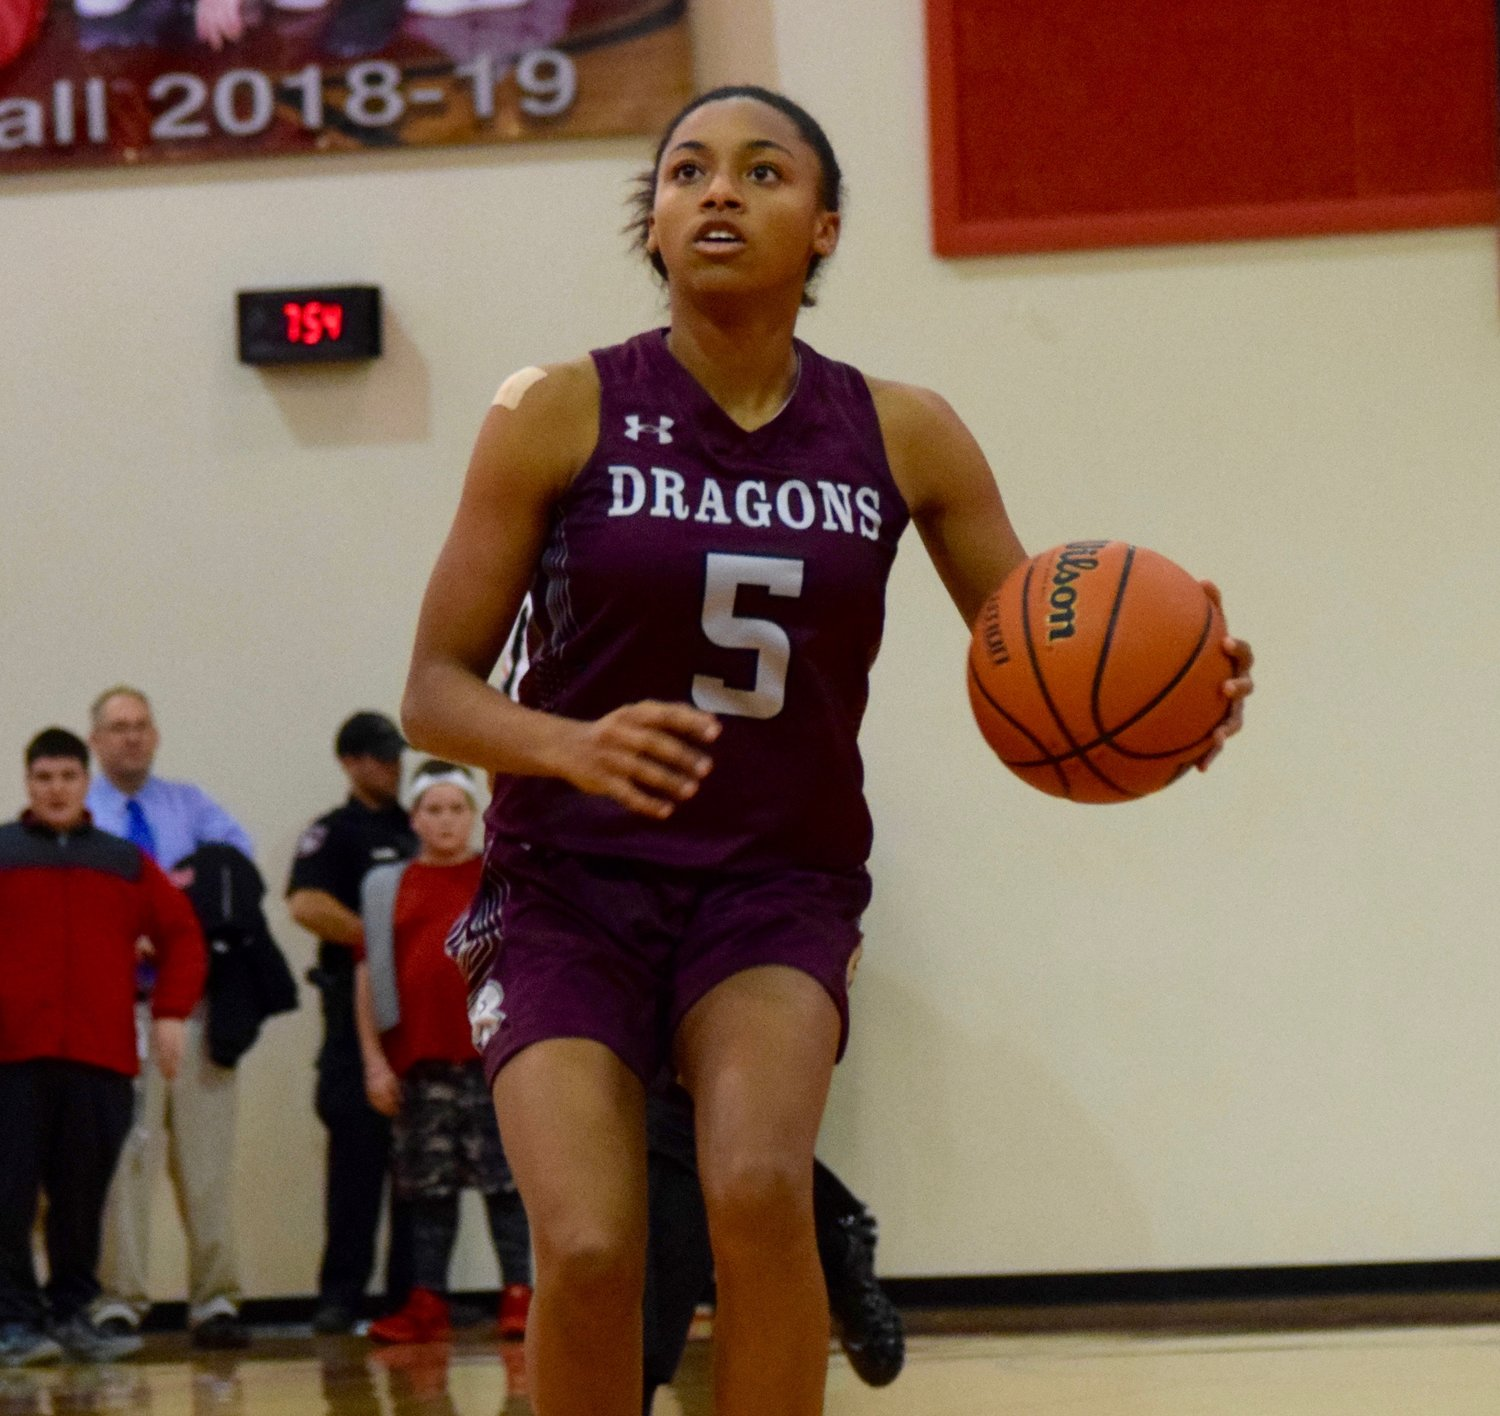 Jaaucklyn Moore led the way with 17 points for Round Rock, but the Lady Dragons lost to Vista Ridge 69-46 Tuesday night in district play.